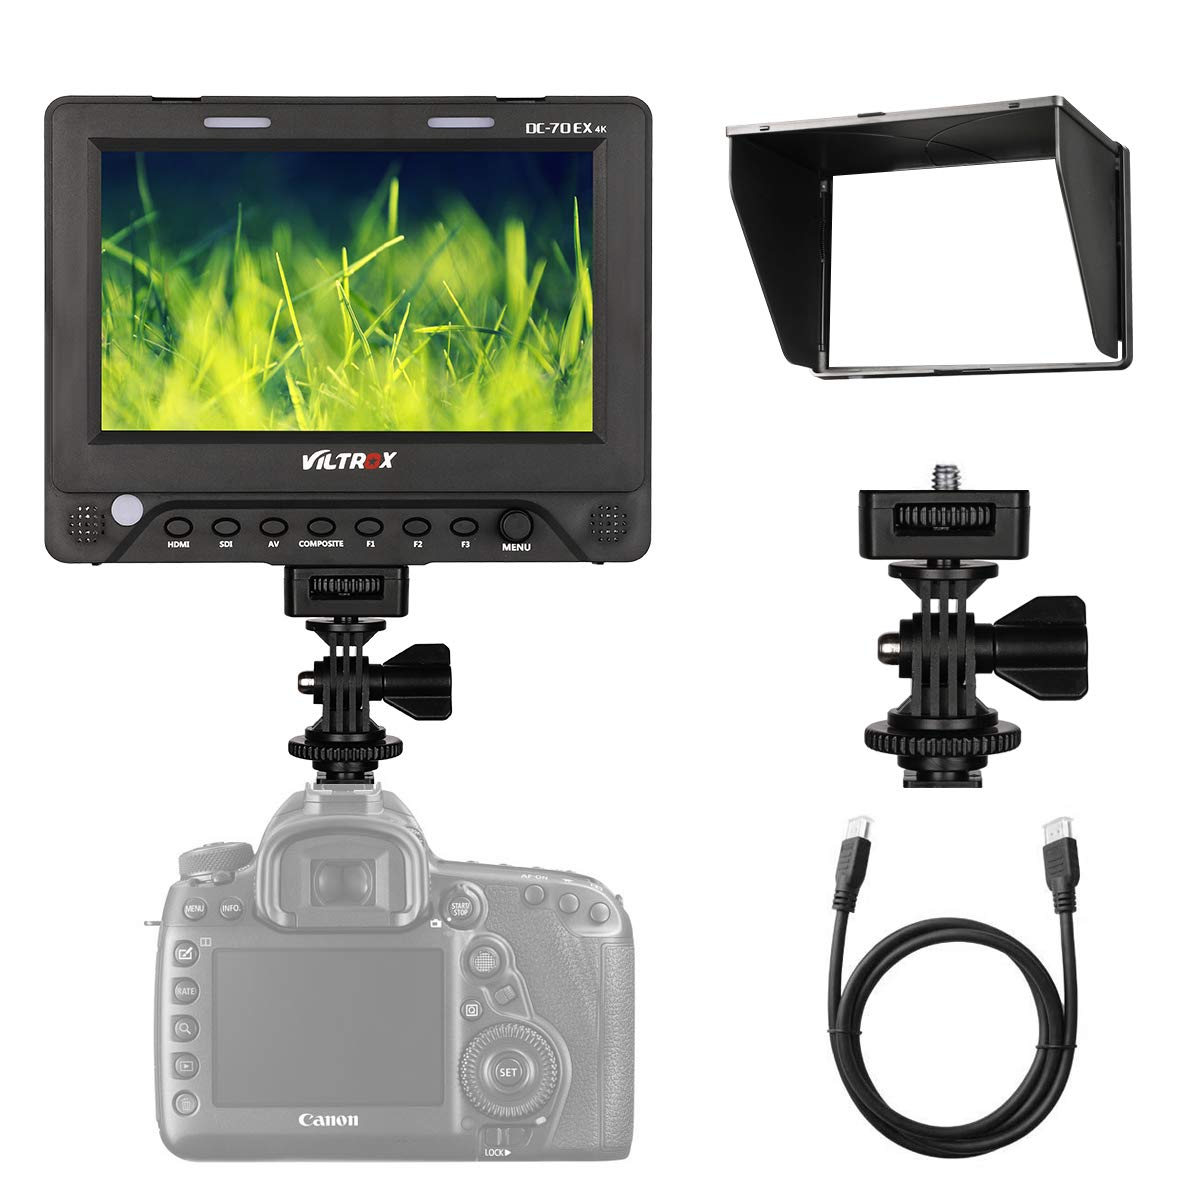 Viltrox DC-70EX 7'' 4K HD Clip-on HDMI/SDI/AV Input Output Camera Video LCD Monitor Display Compatible for Canon Nikon Pentax Olympus Sony and Other DSLR Cameras by VILTROX